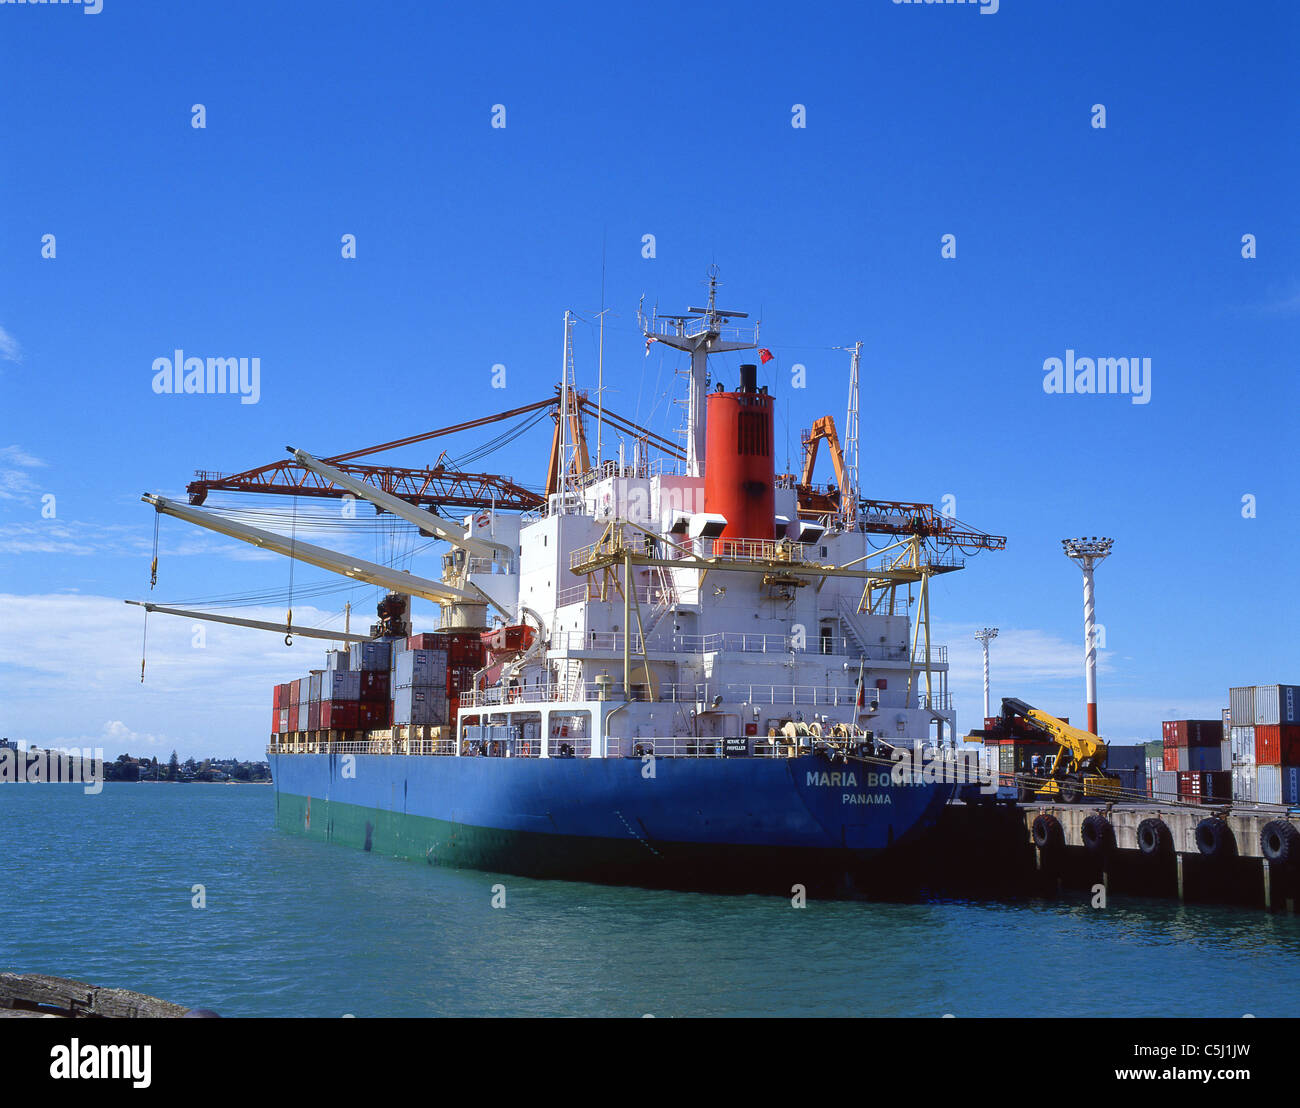 Container ship loading in Auckland Harbour, Auckland, Auckland Region, North Island, New Zealand - Stock Image